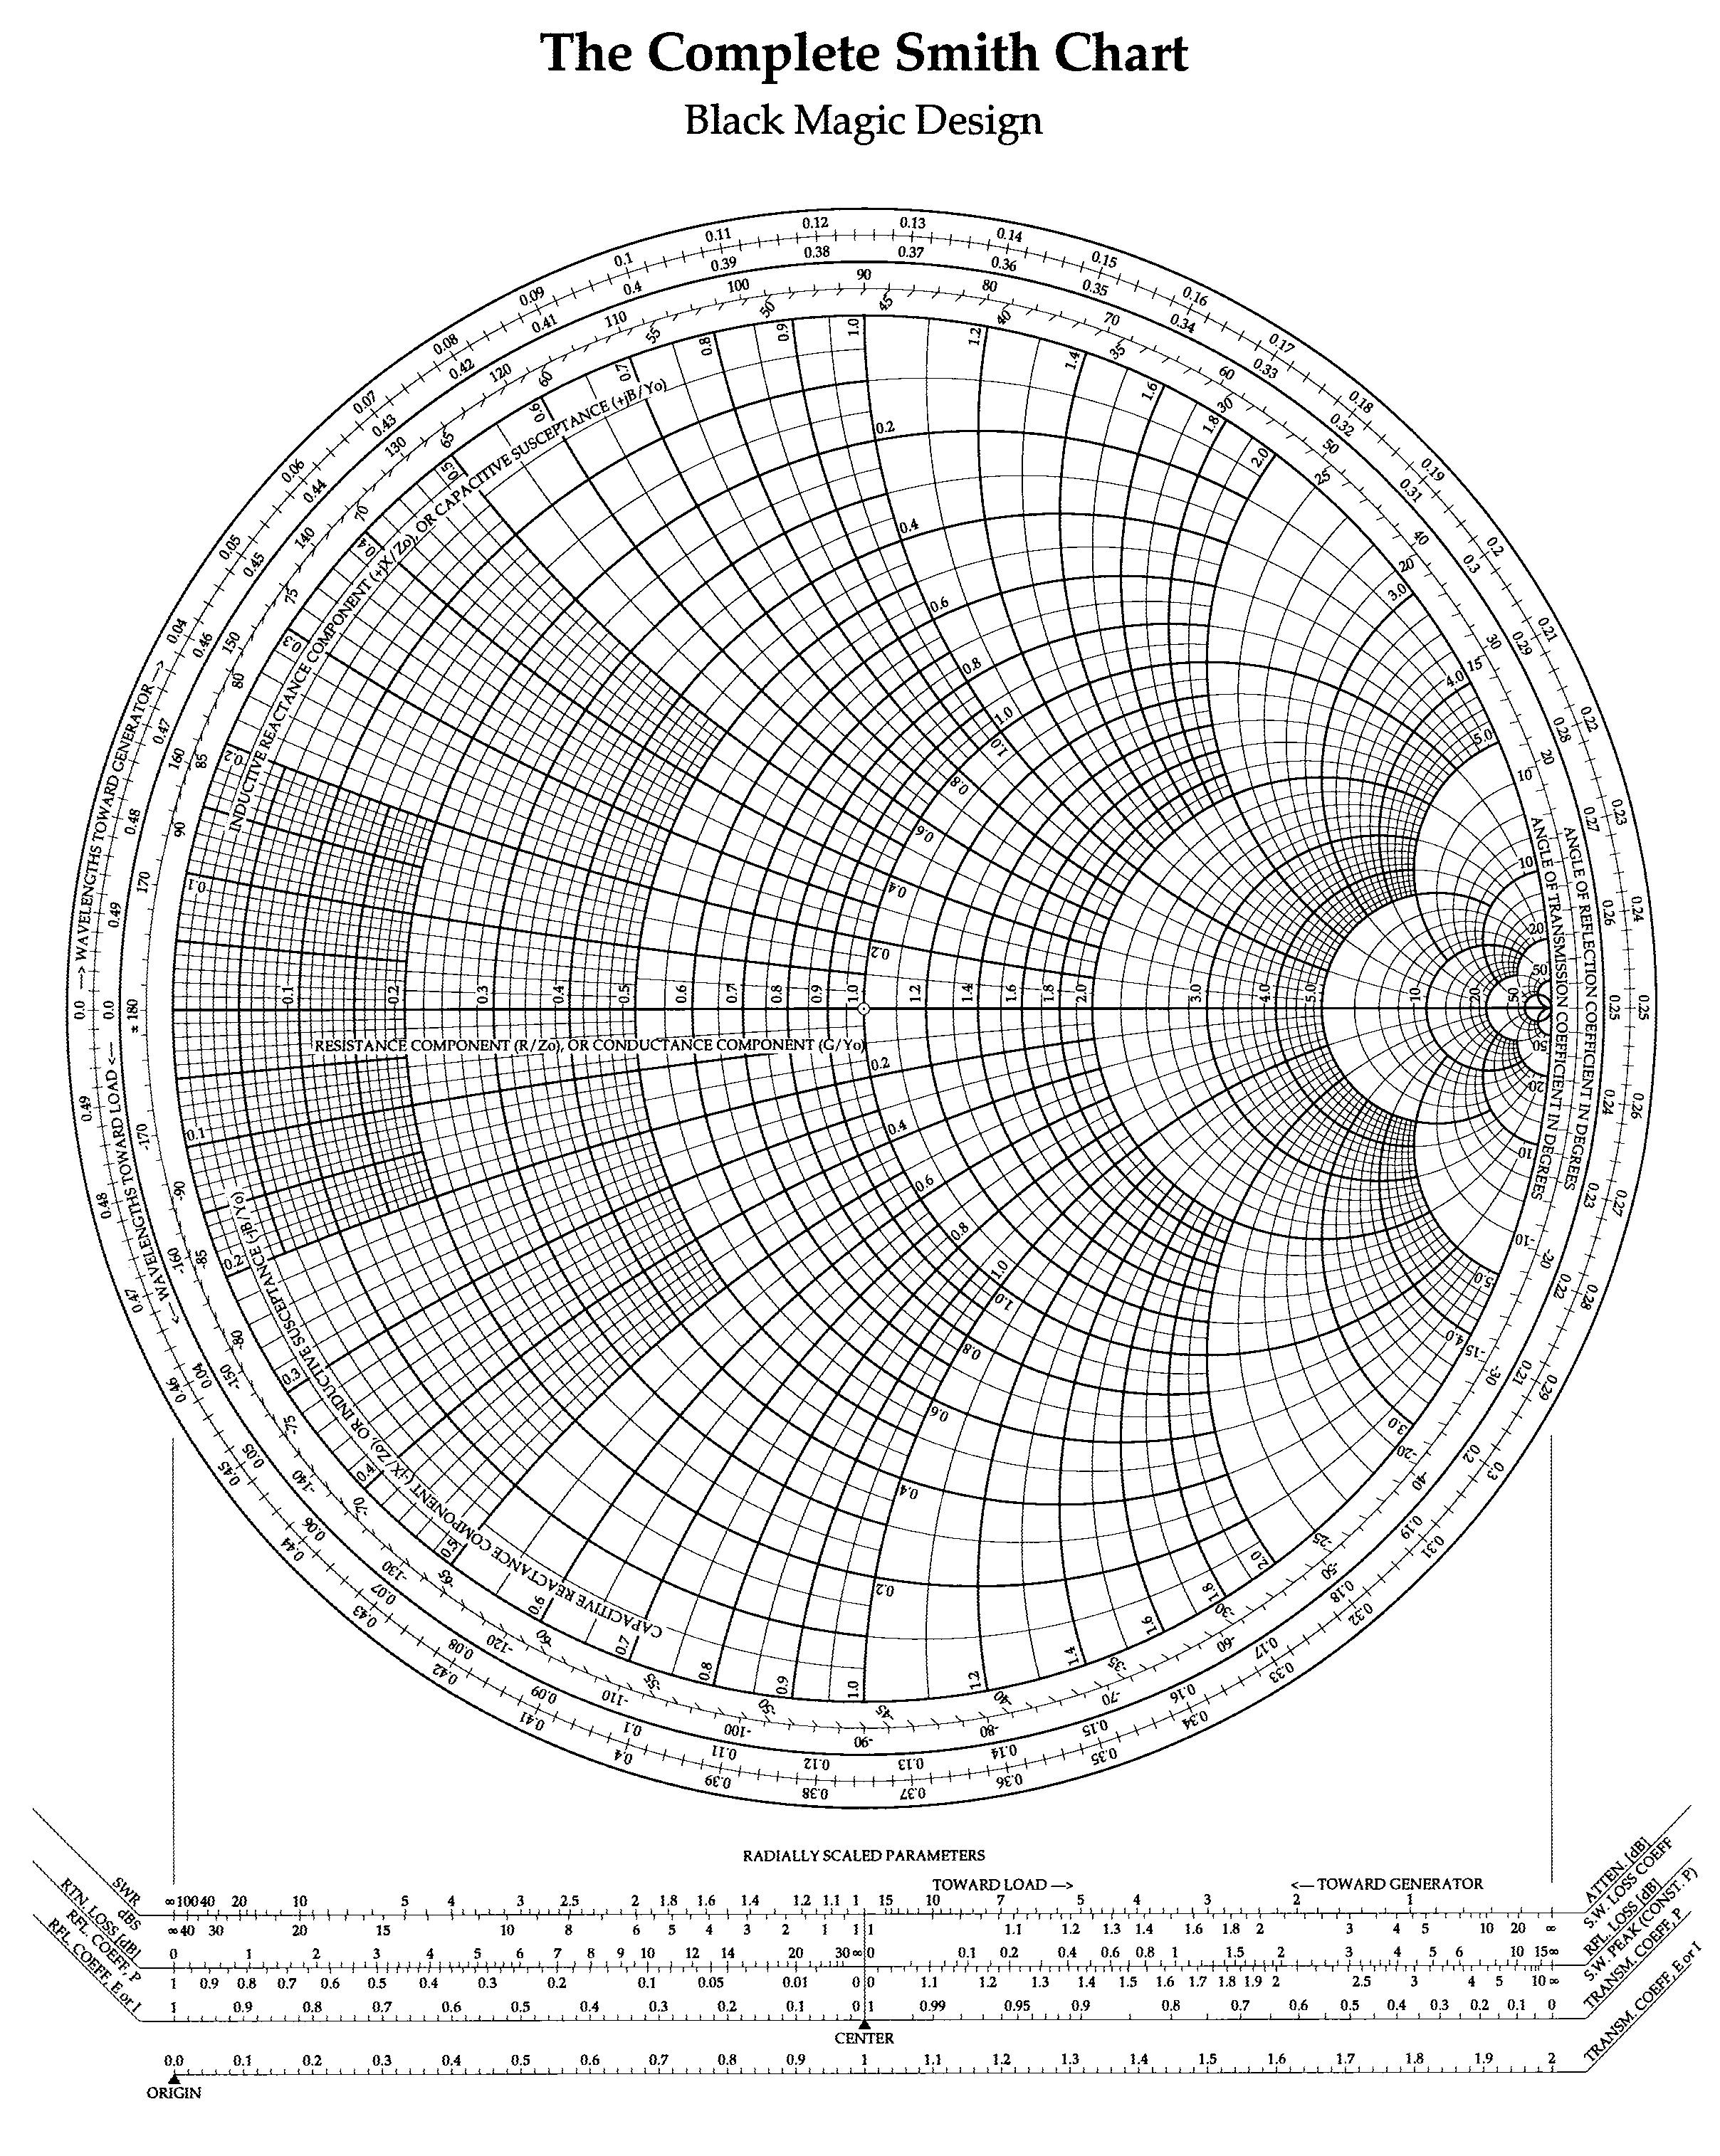 Theplete Smith Chart  Black Magic Design  #infographic